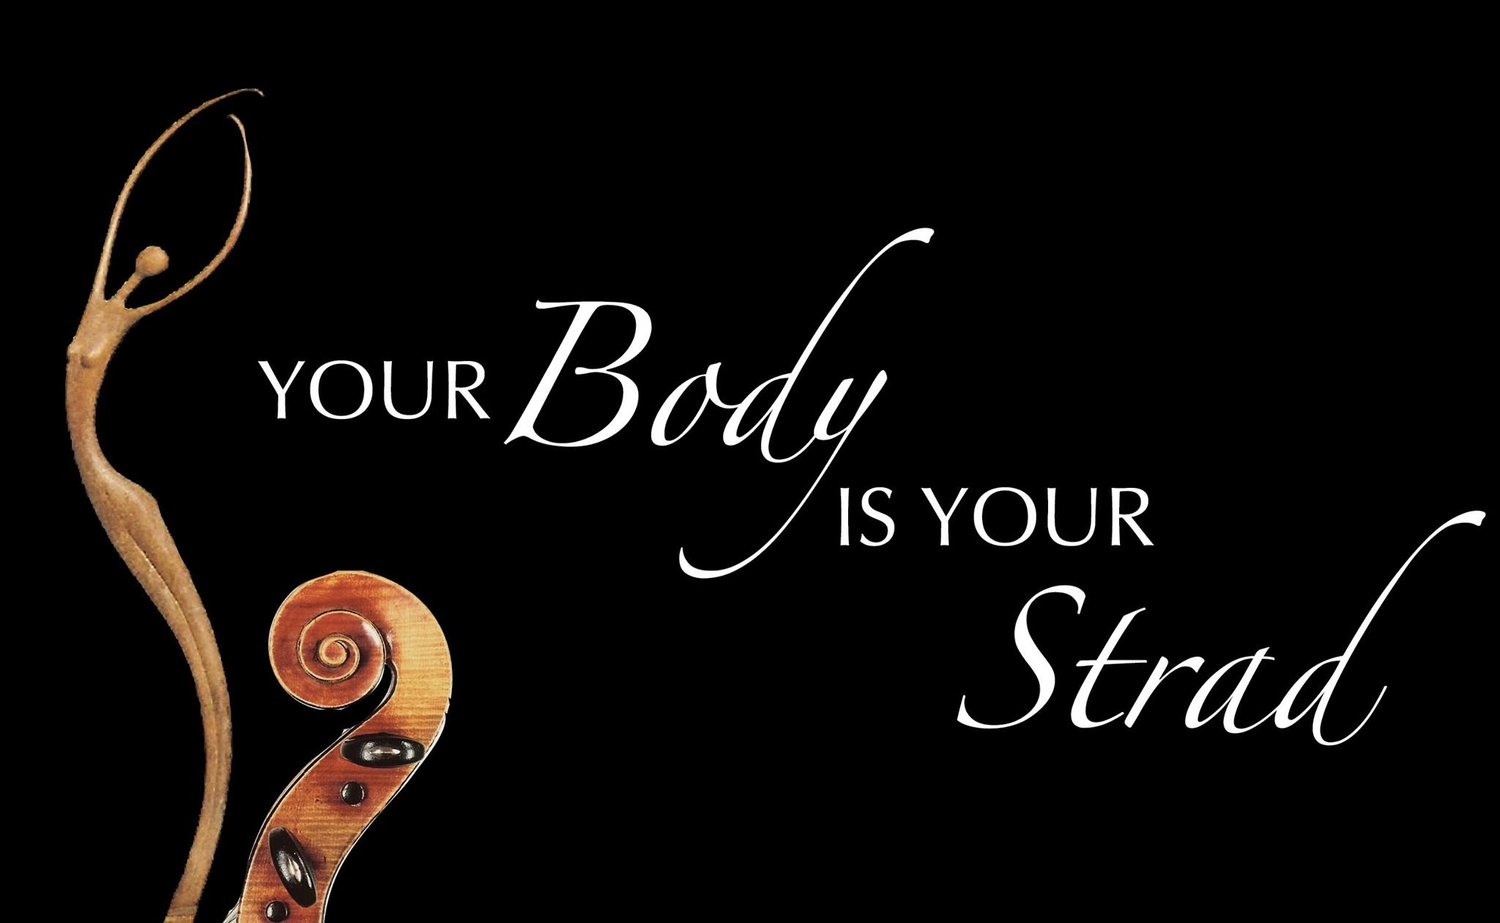 Your Body Is Your Strad